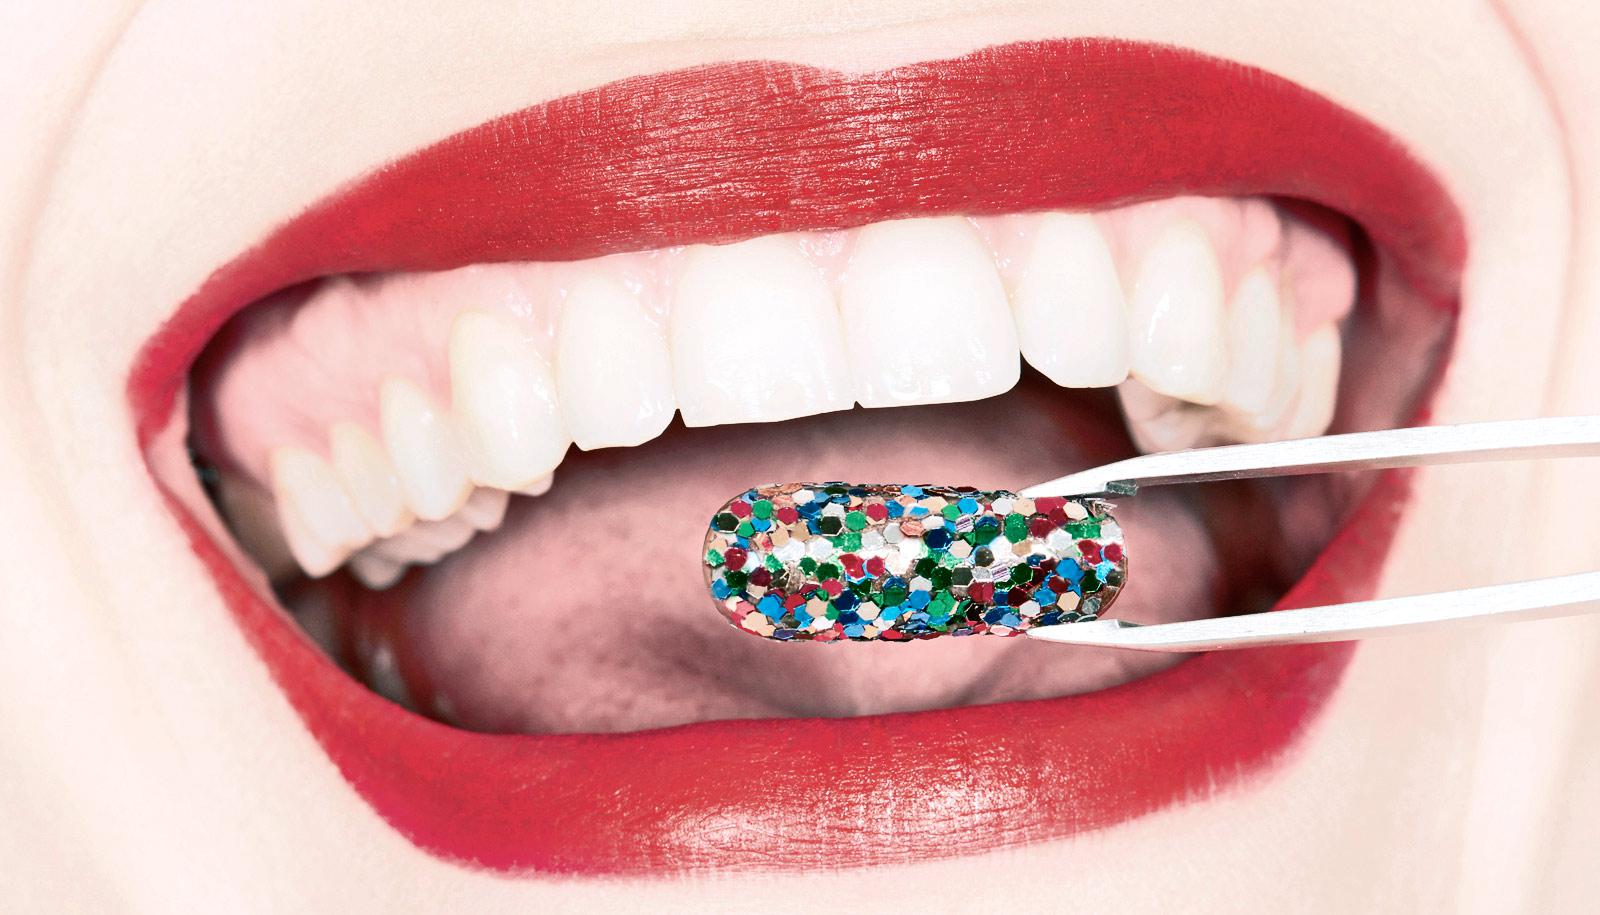 tweezers hold pill in front of mouth with red lipstick